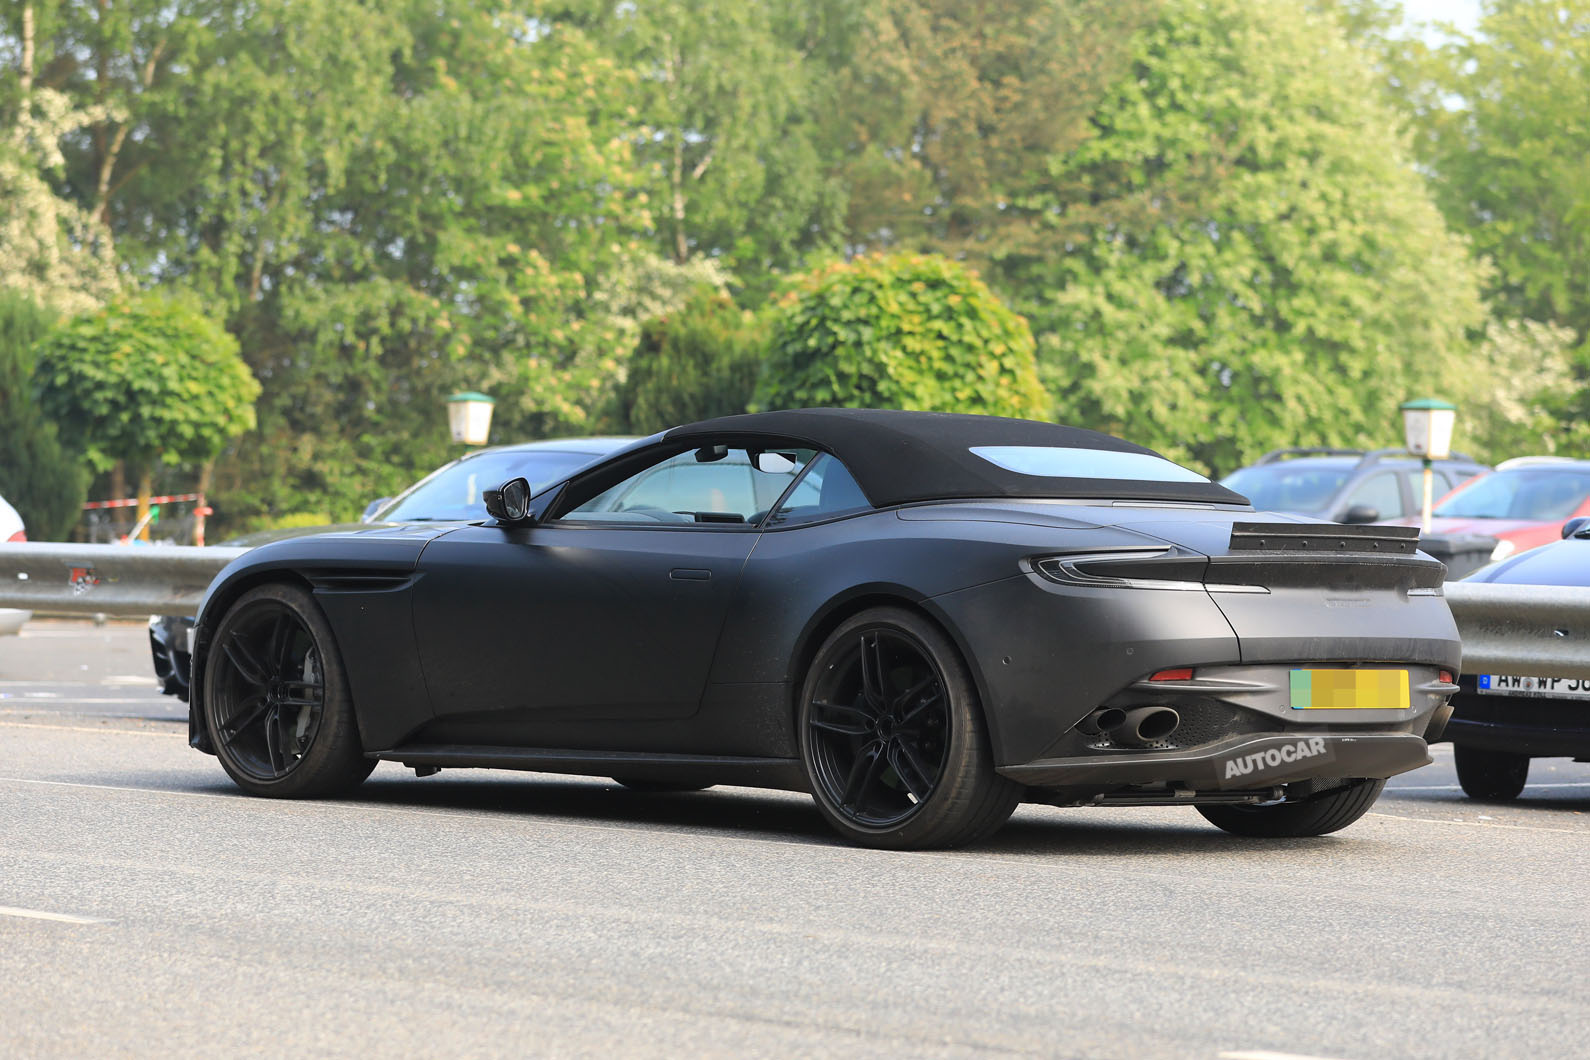 700bhp Aston Martin Dbs Superleggera New Footage Of Volante Drop